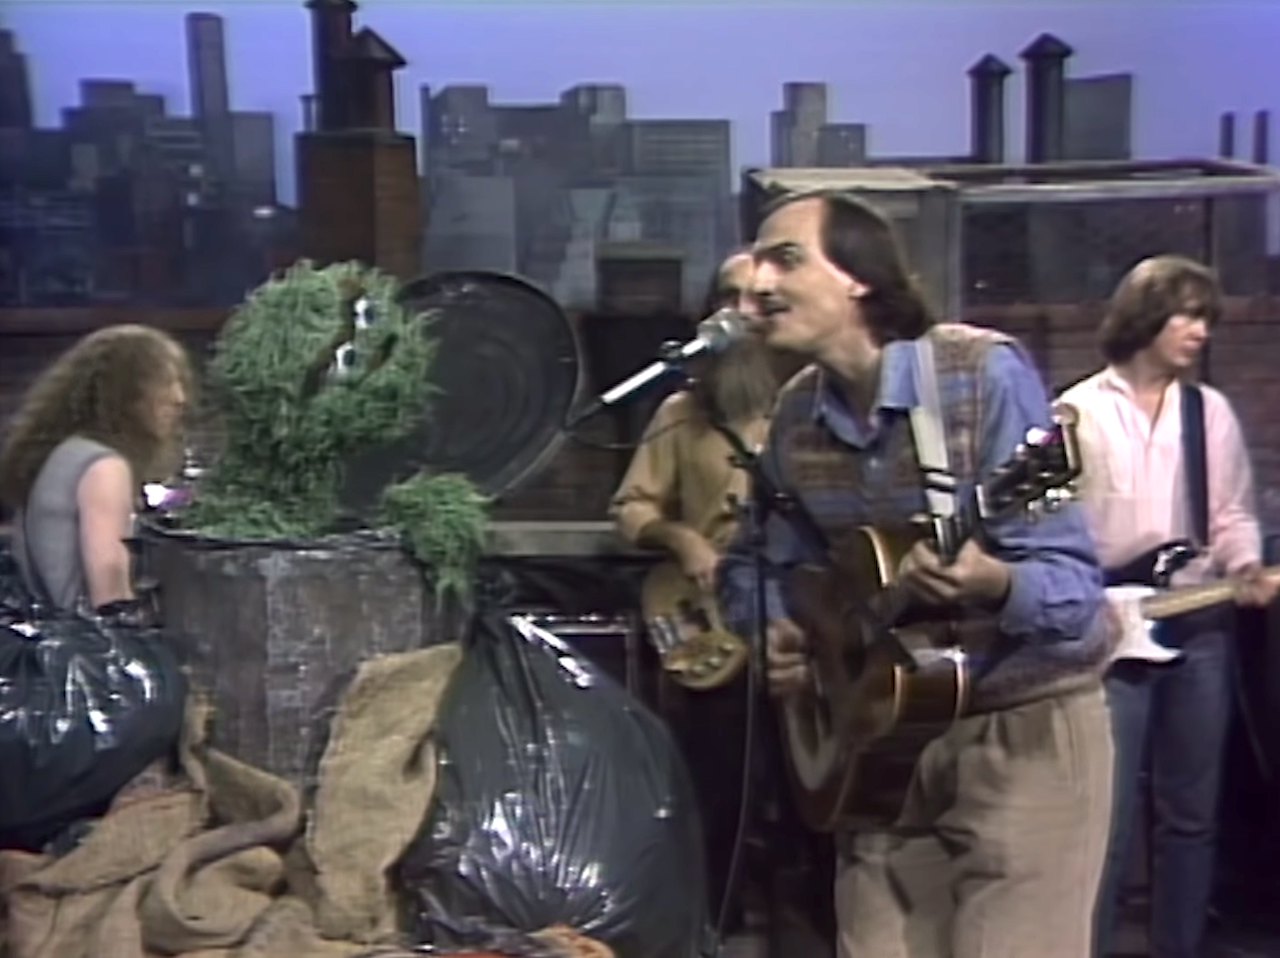 James Taylor and Oscar the Grouch Sing a Duet on a Classic Episode of 'Sesame Street'